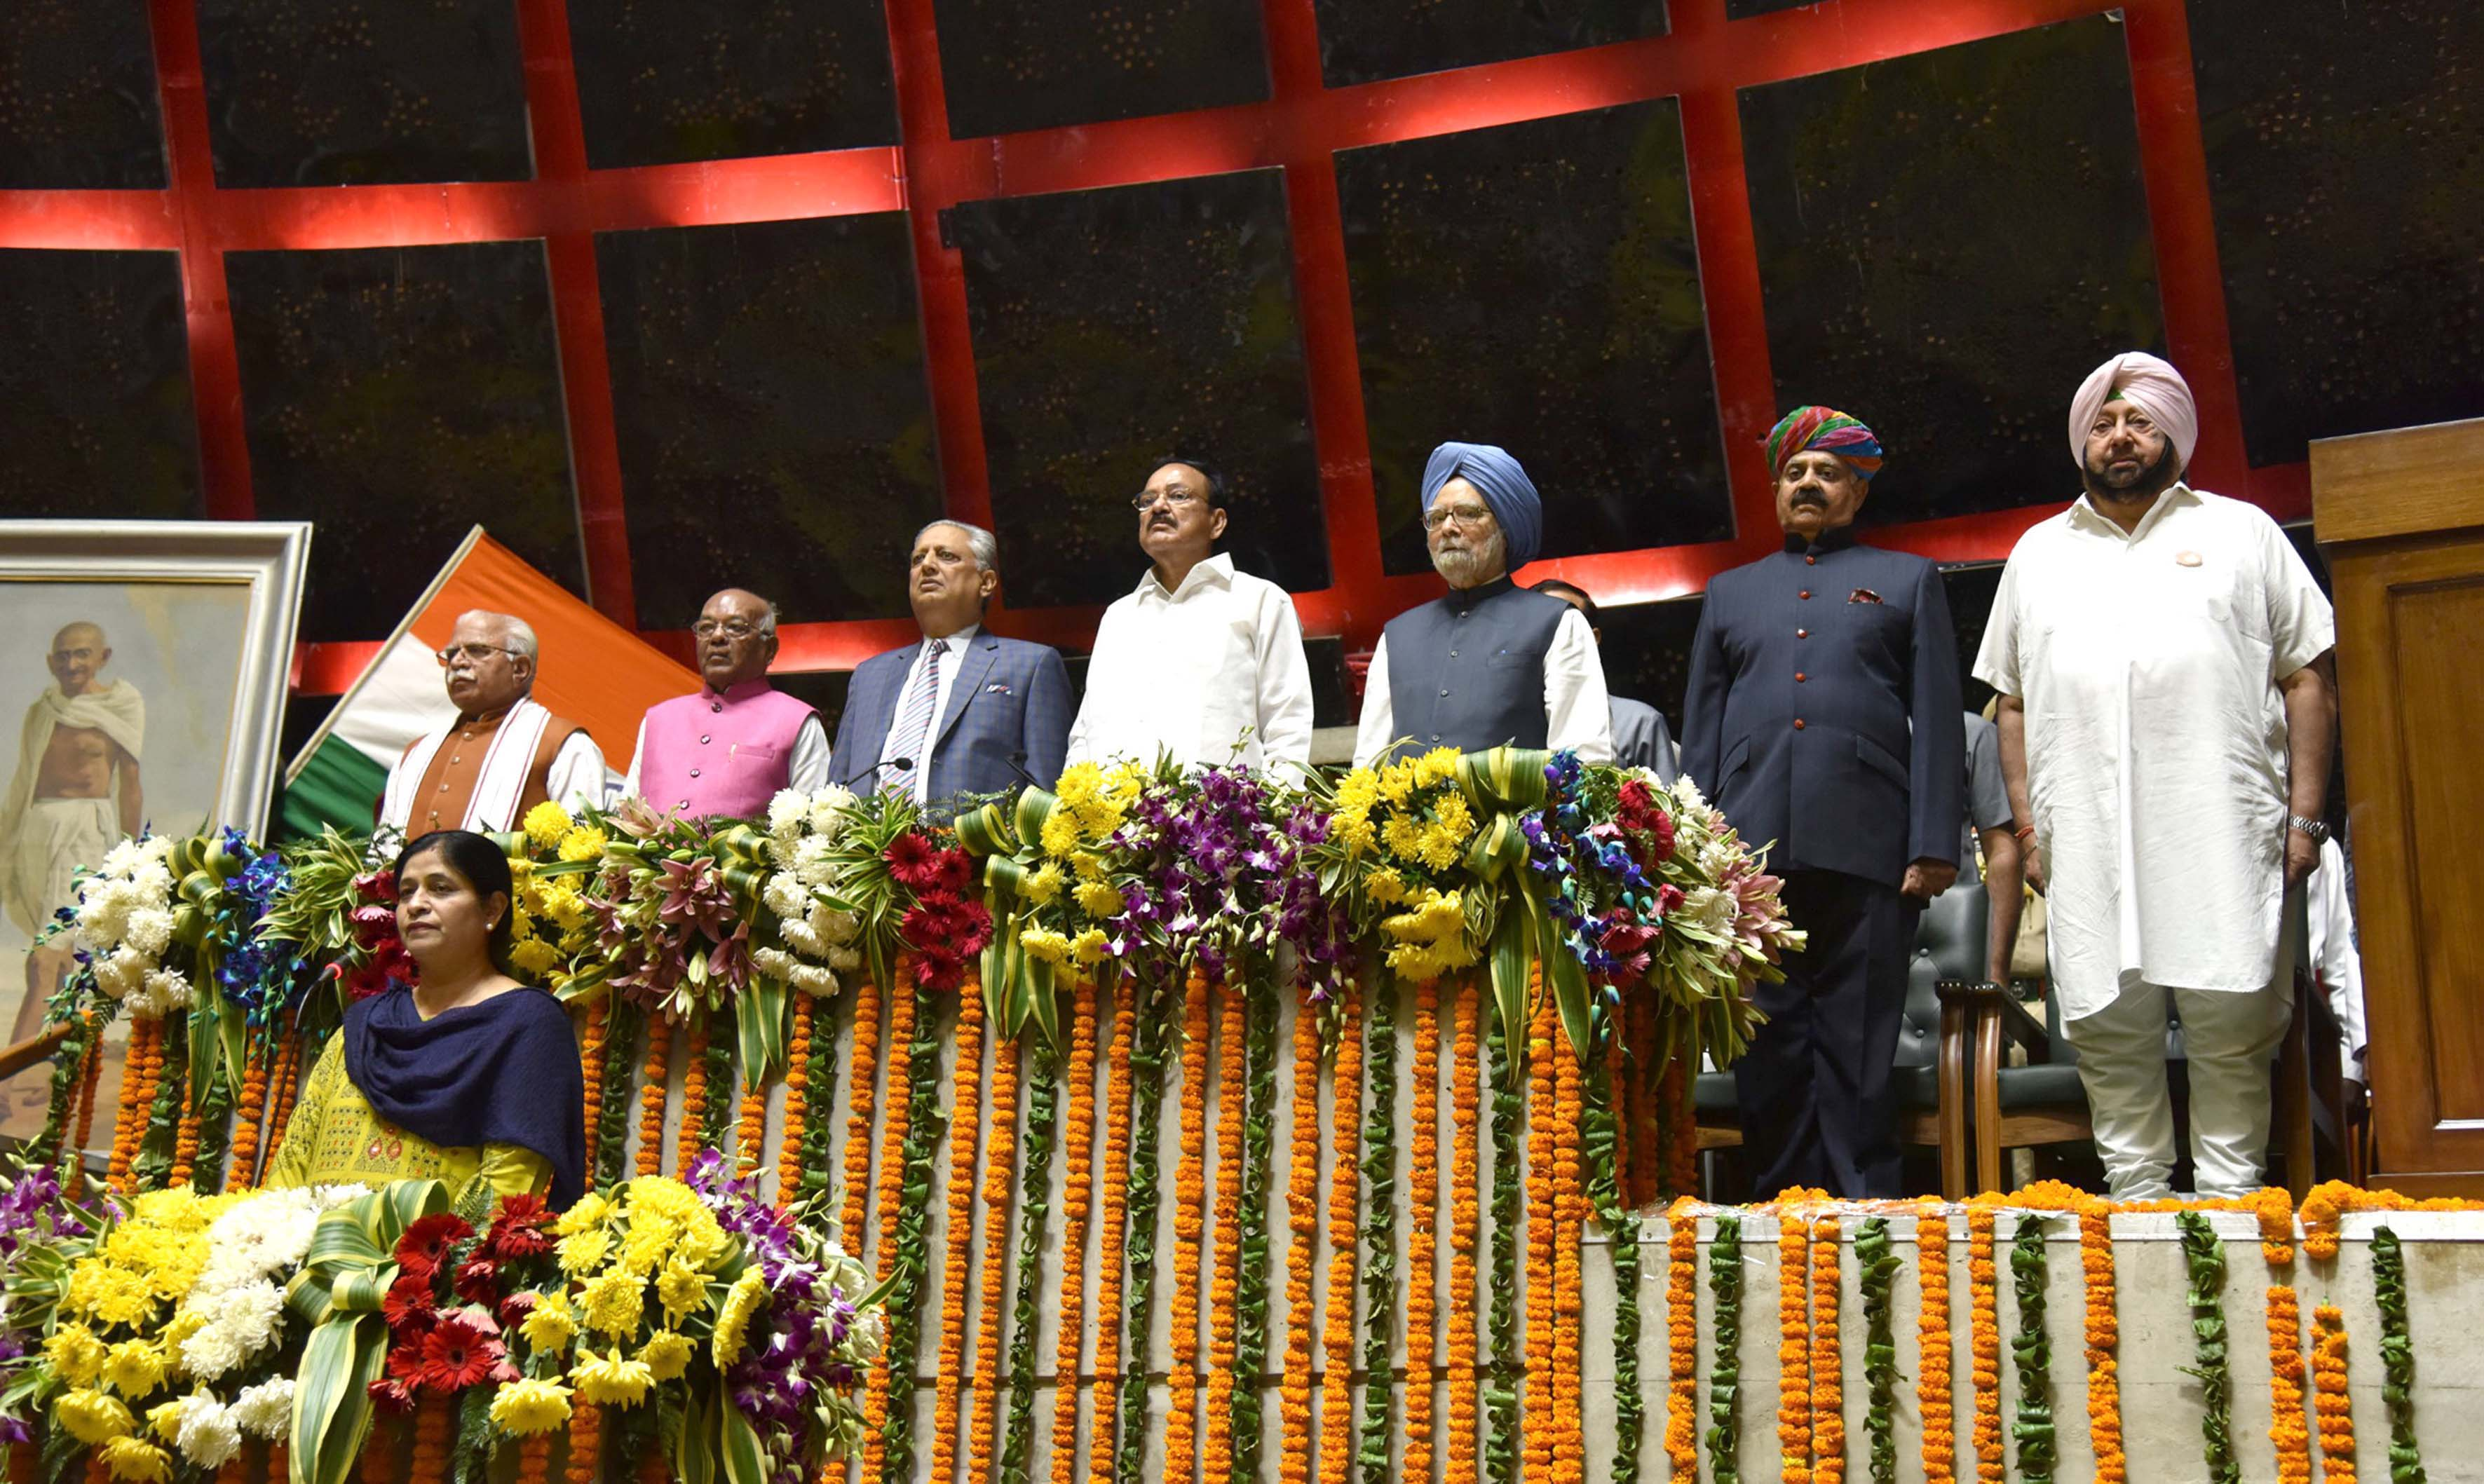 Vice President M Venkaiah Naidu, Former Prime Minister Manmohan Singh, Punjab Chief Minister Captain Amarinder Singh, Haryana Chief Minister Manohar Lal Khattar at the special session of Punjab Assembly convened to commemorate the 550th Birth Anniversary of Guru Nanak Dev Ji, in Chandigarh on Wednesday. (UNI)